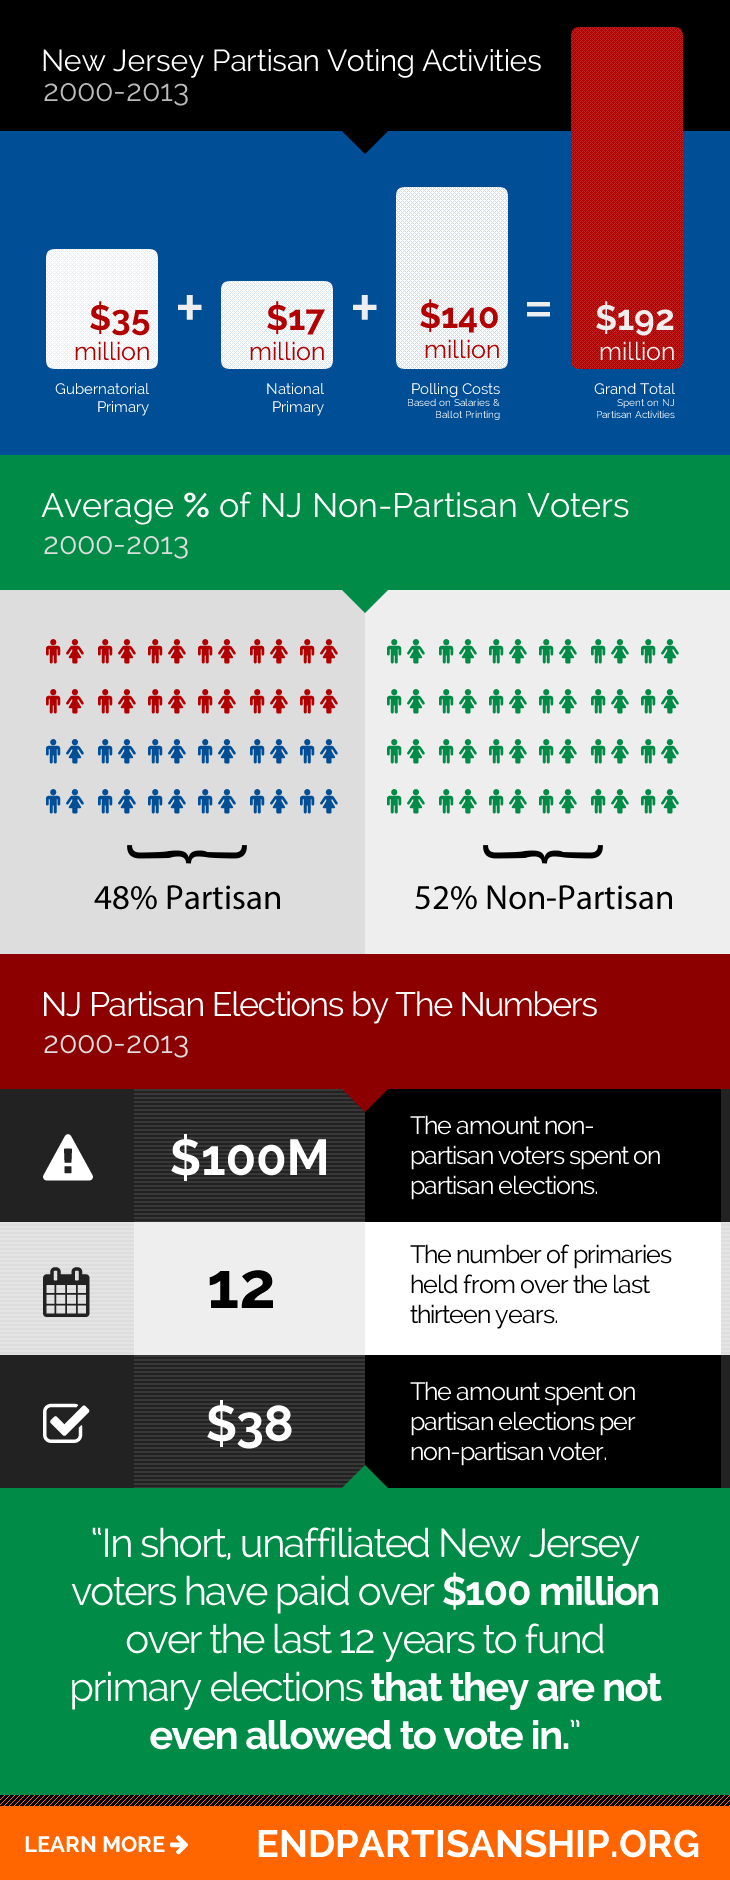 img-public-funding-of-political-party-activities-in-new-jersey-41976.png